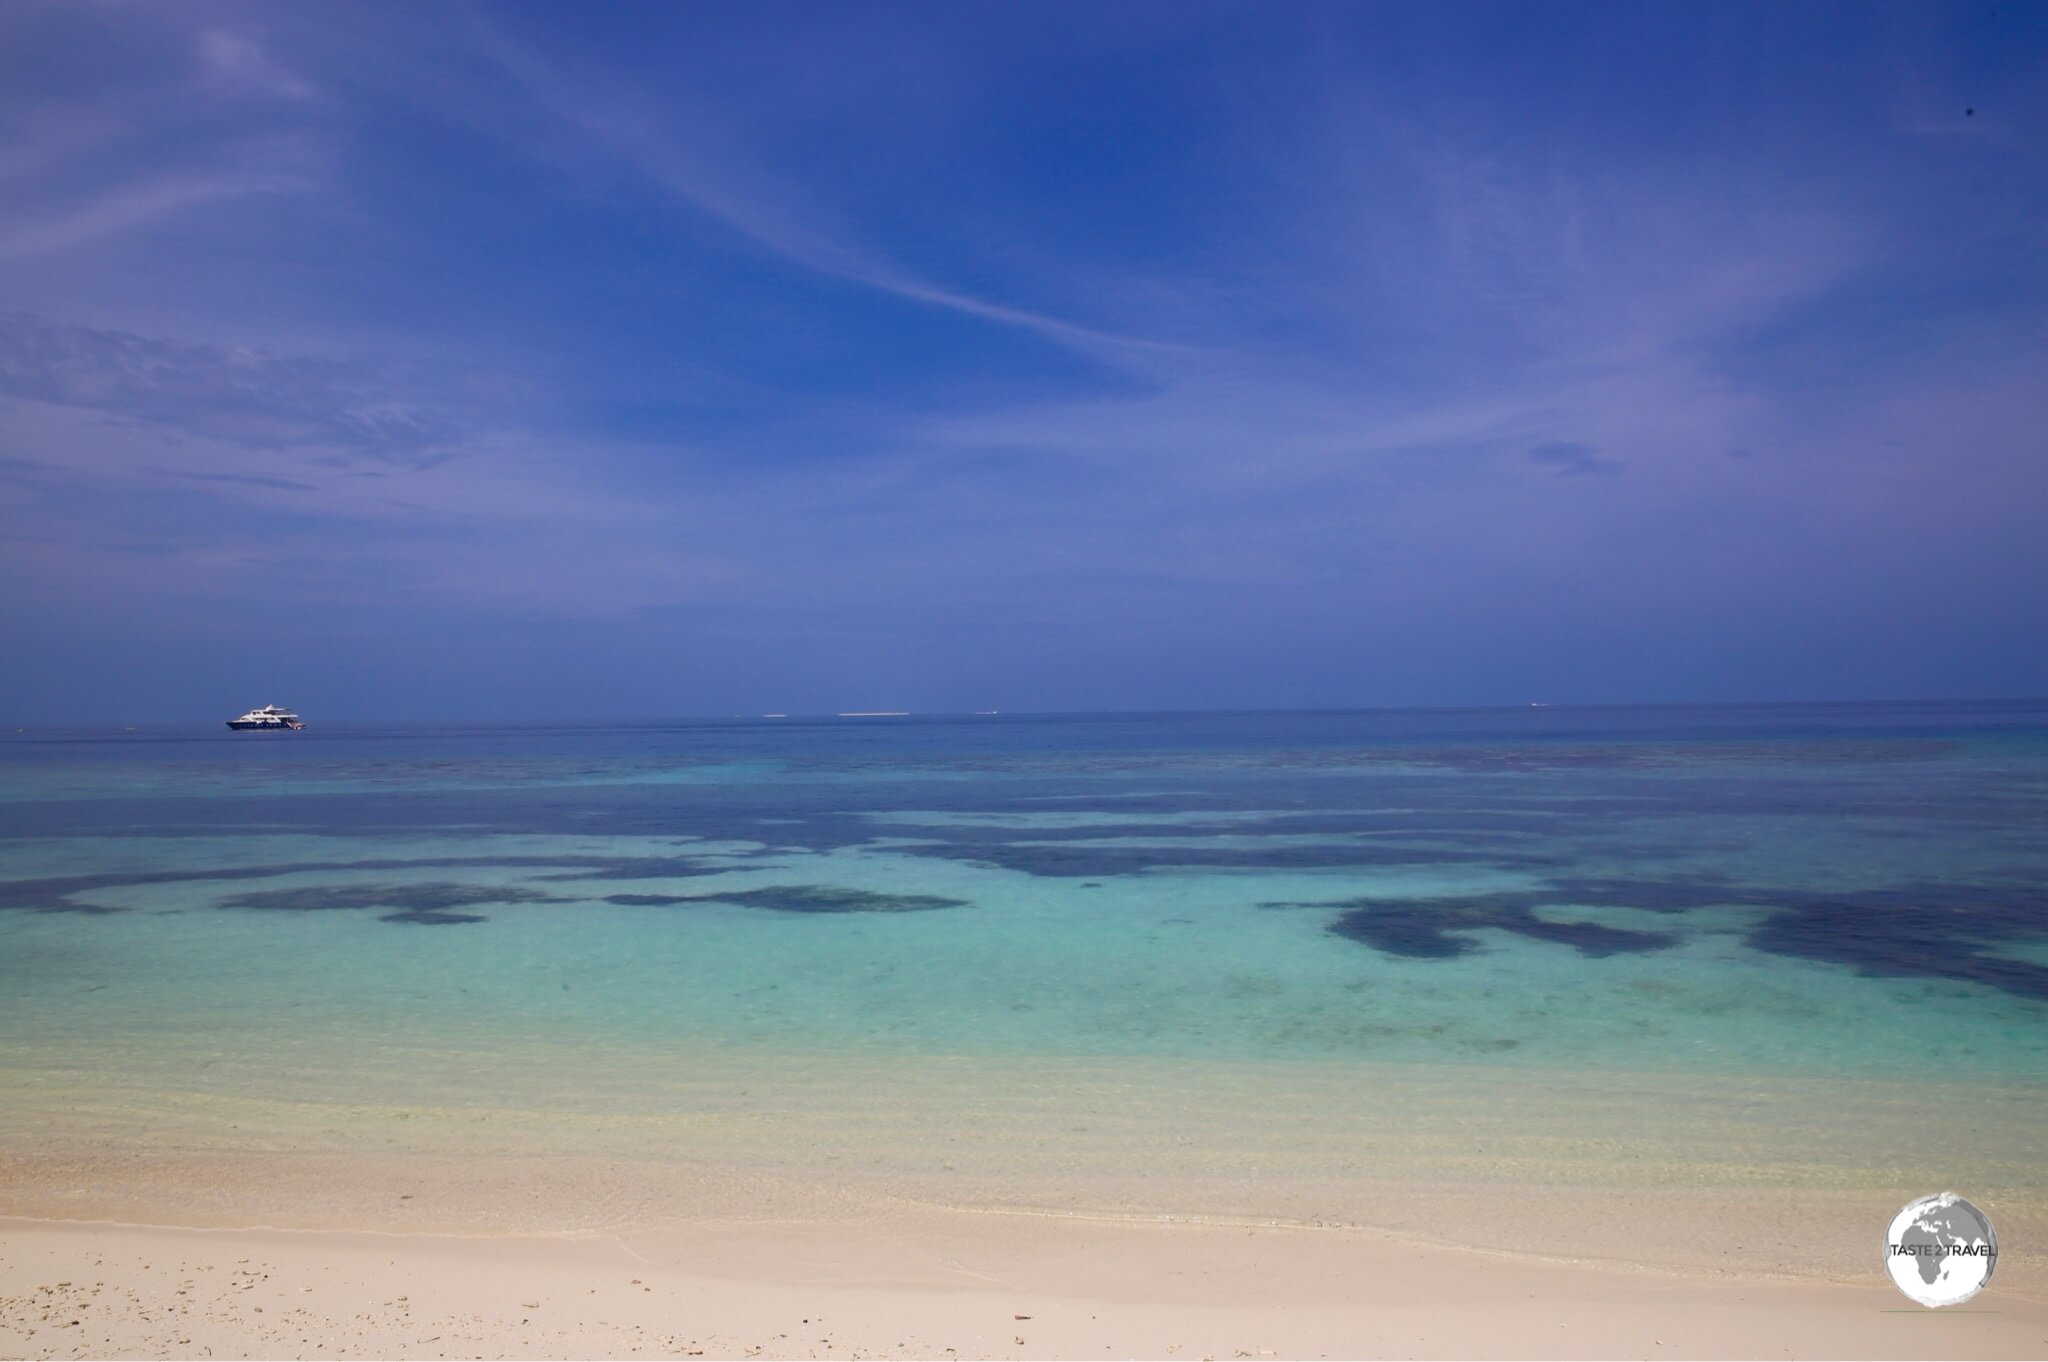 The low-lying islands of the Maldives feature white coral sandy beaches and are surrounded by fringing reefs.